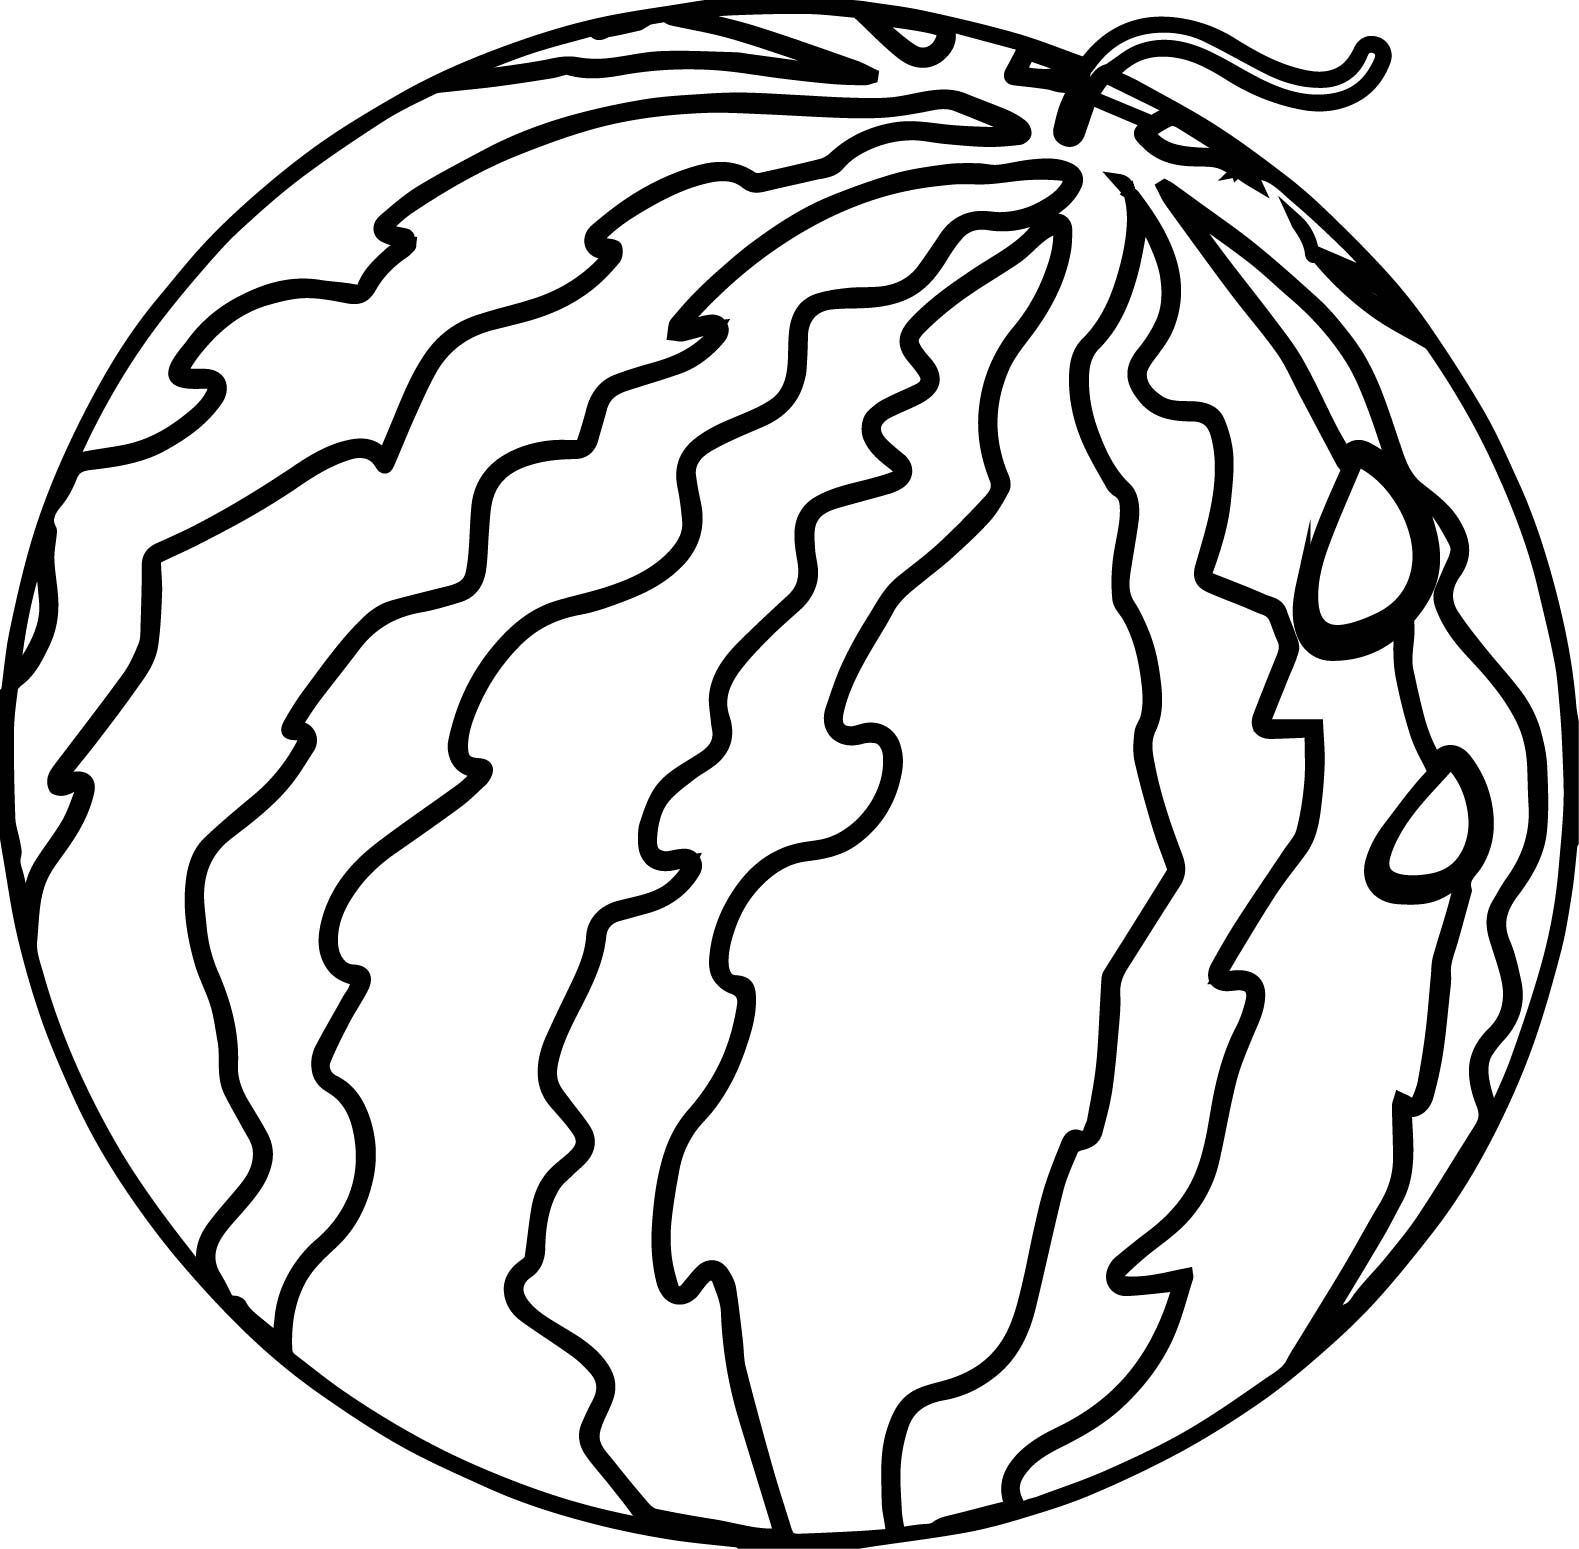 watermelon coloring page - watermelon summer coloring page